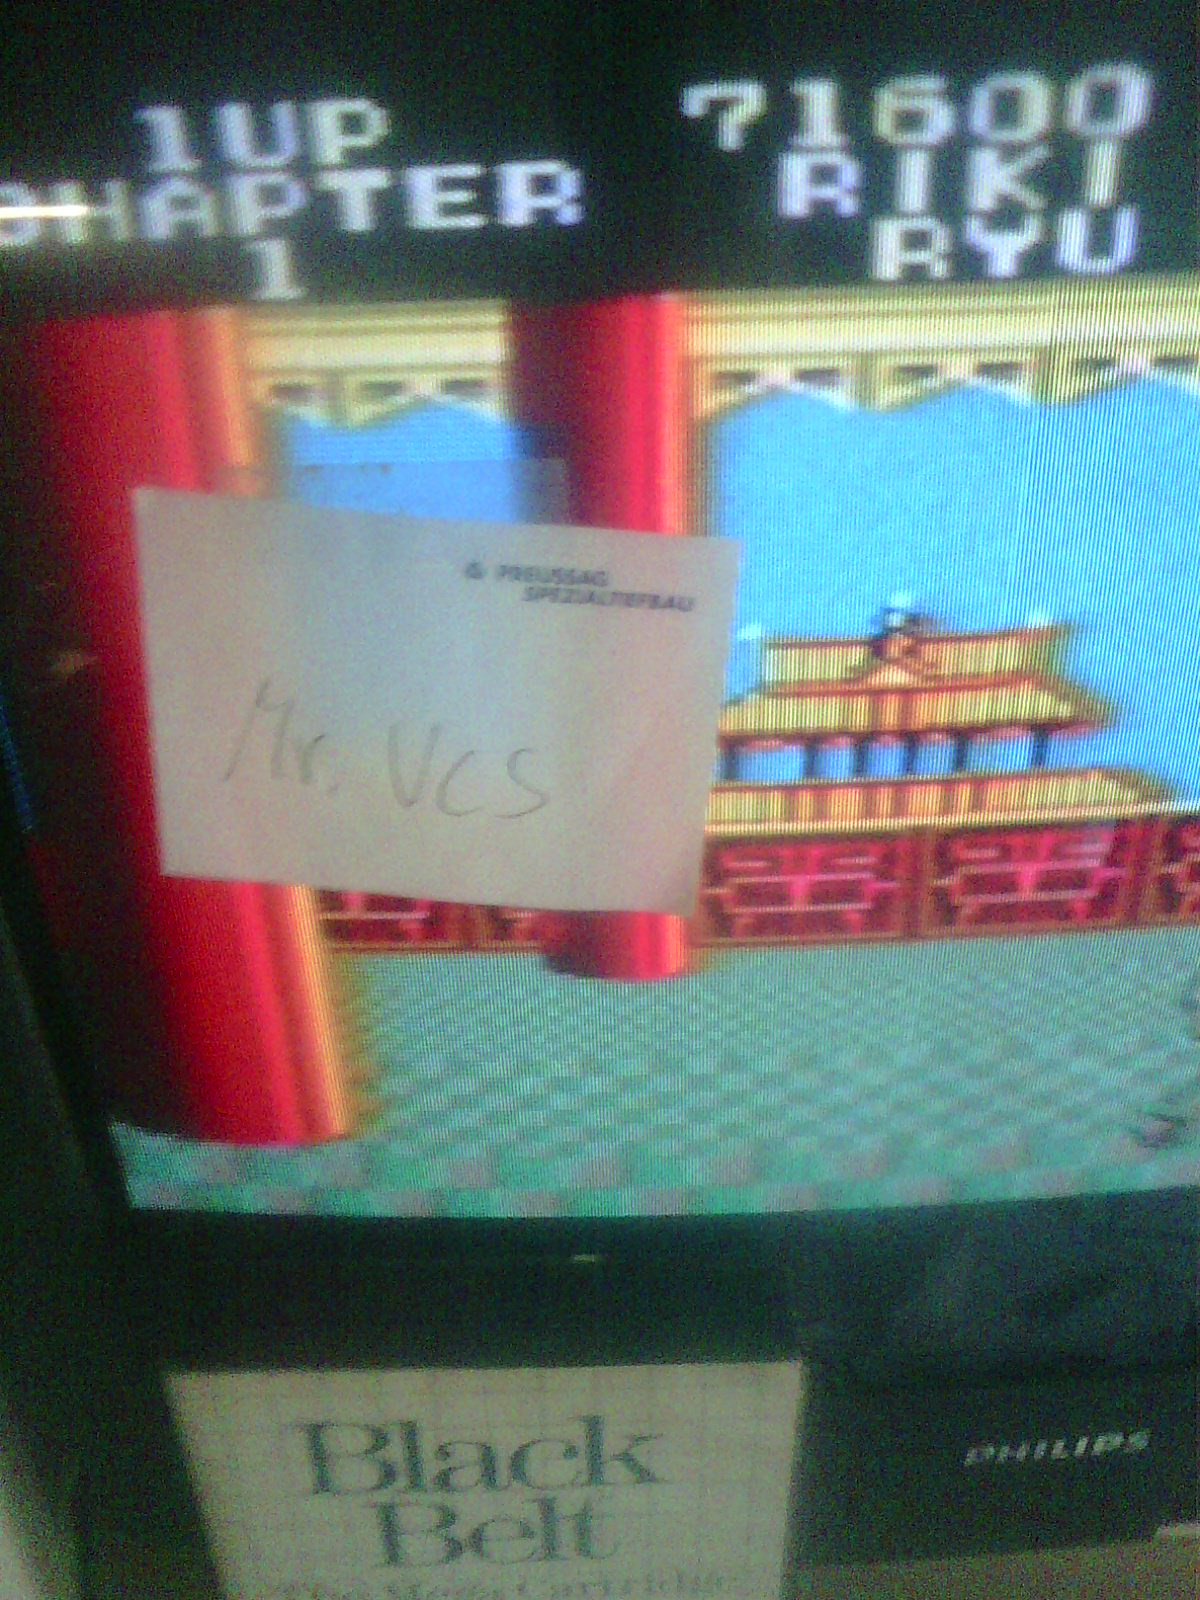 MisterVCS: Black Belt (Sega Master System) 71,600 points on 2018-05-06 06:29:29